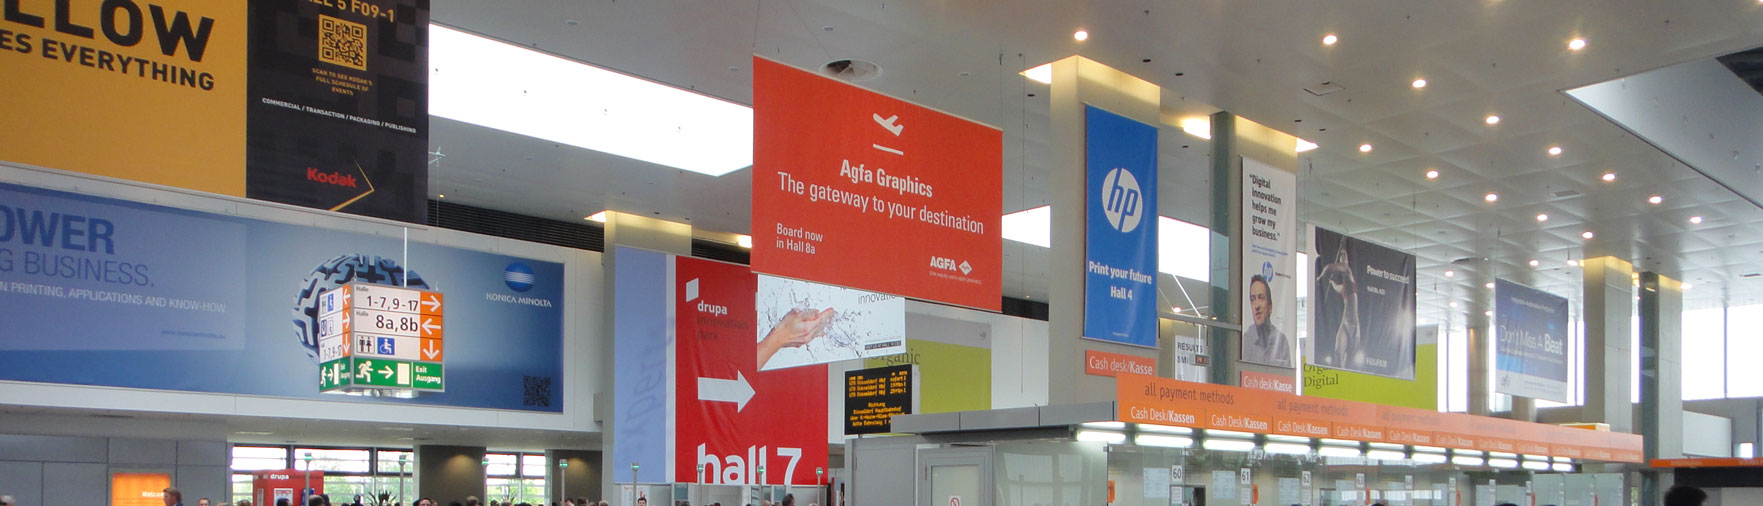 Hanging Banners Indoor Branding Ideas